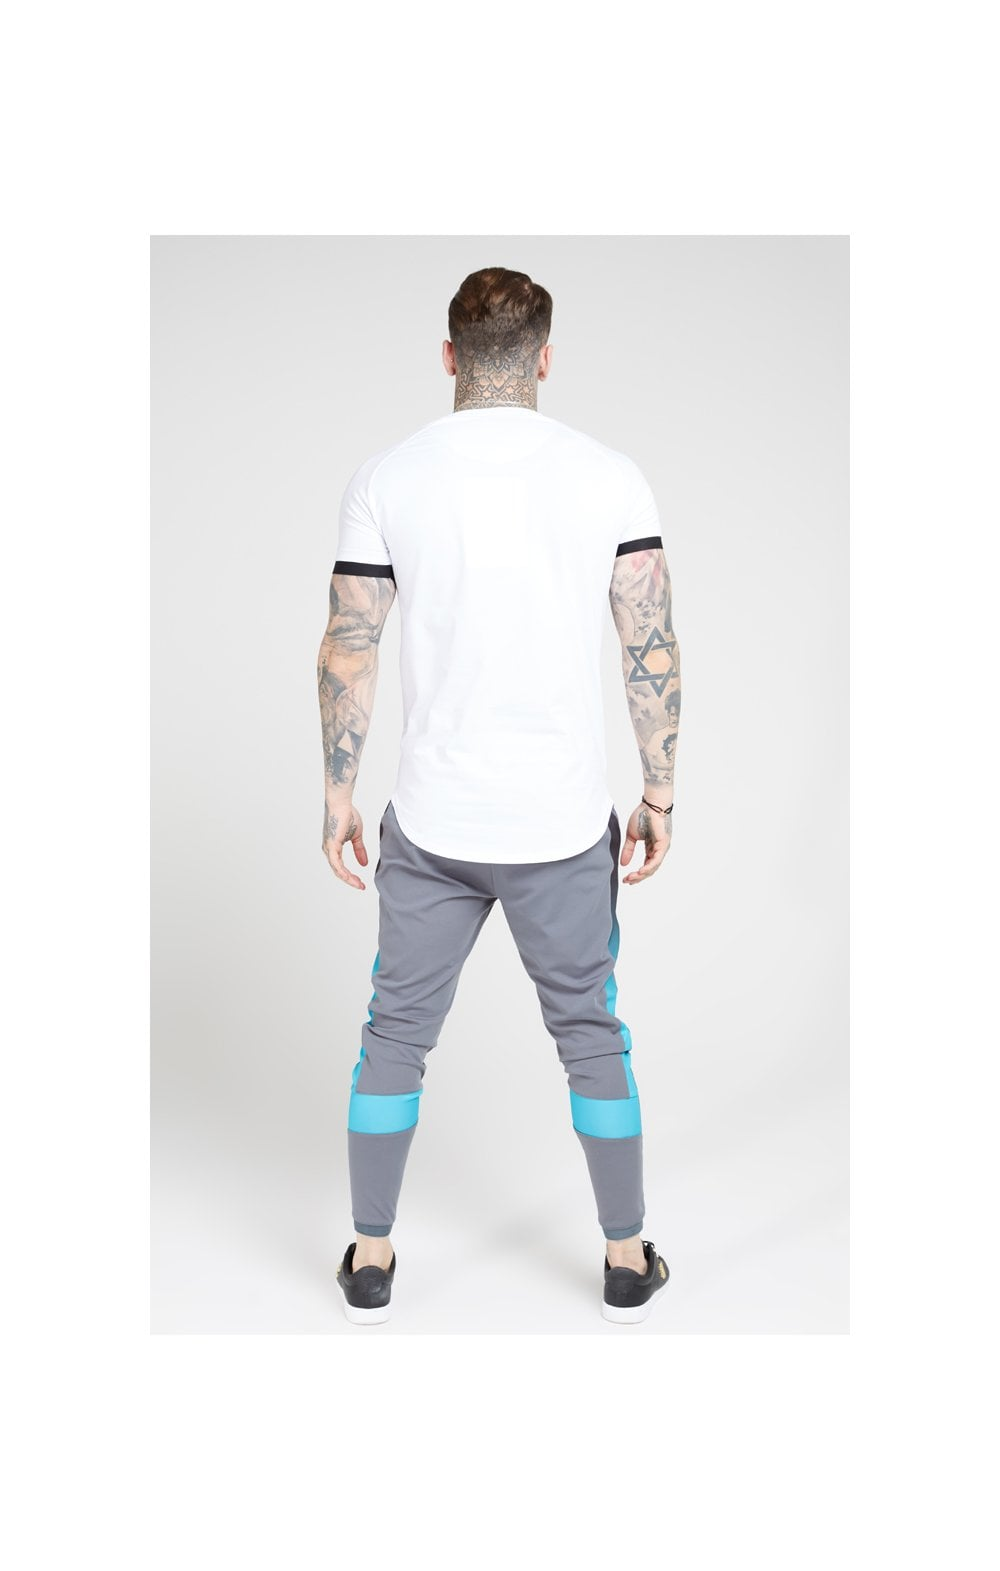 SikSilk S/S Inset Cuff Fade Panel Tech Tee – White, Black & Teal (4)